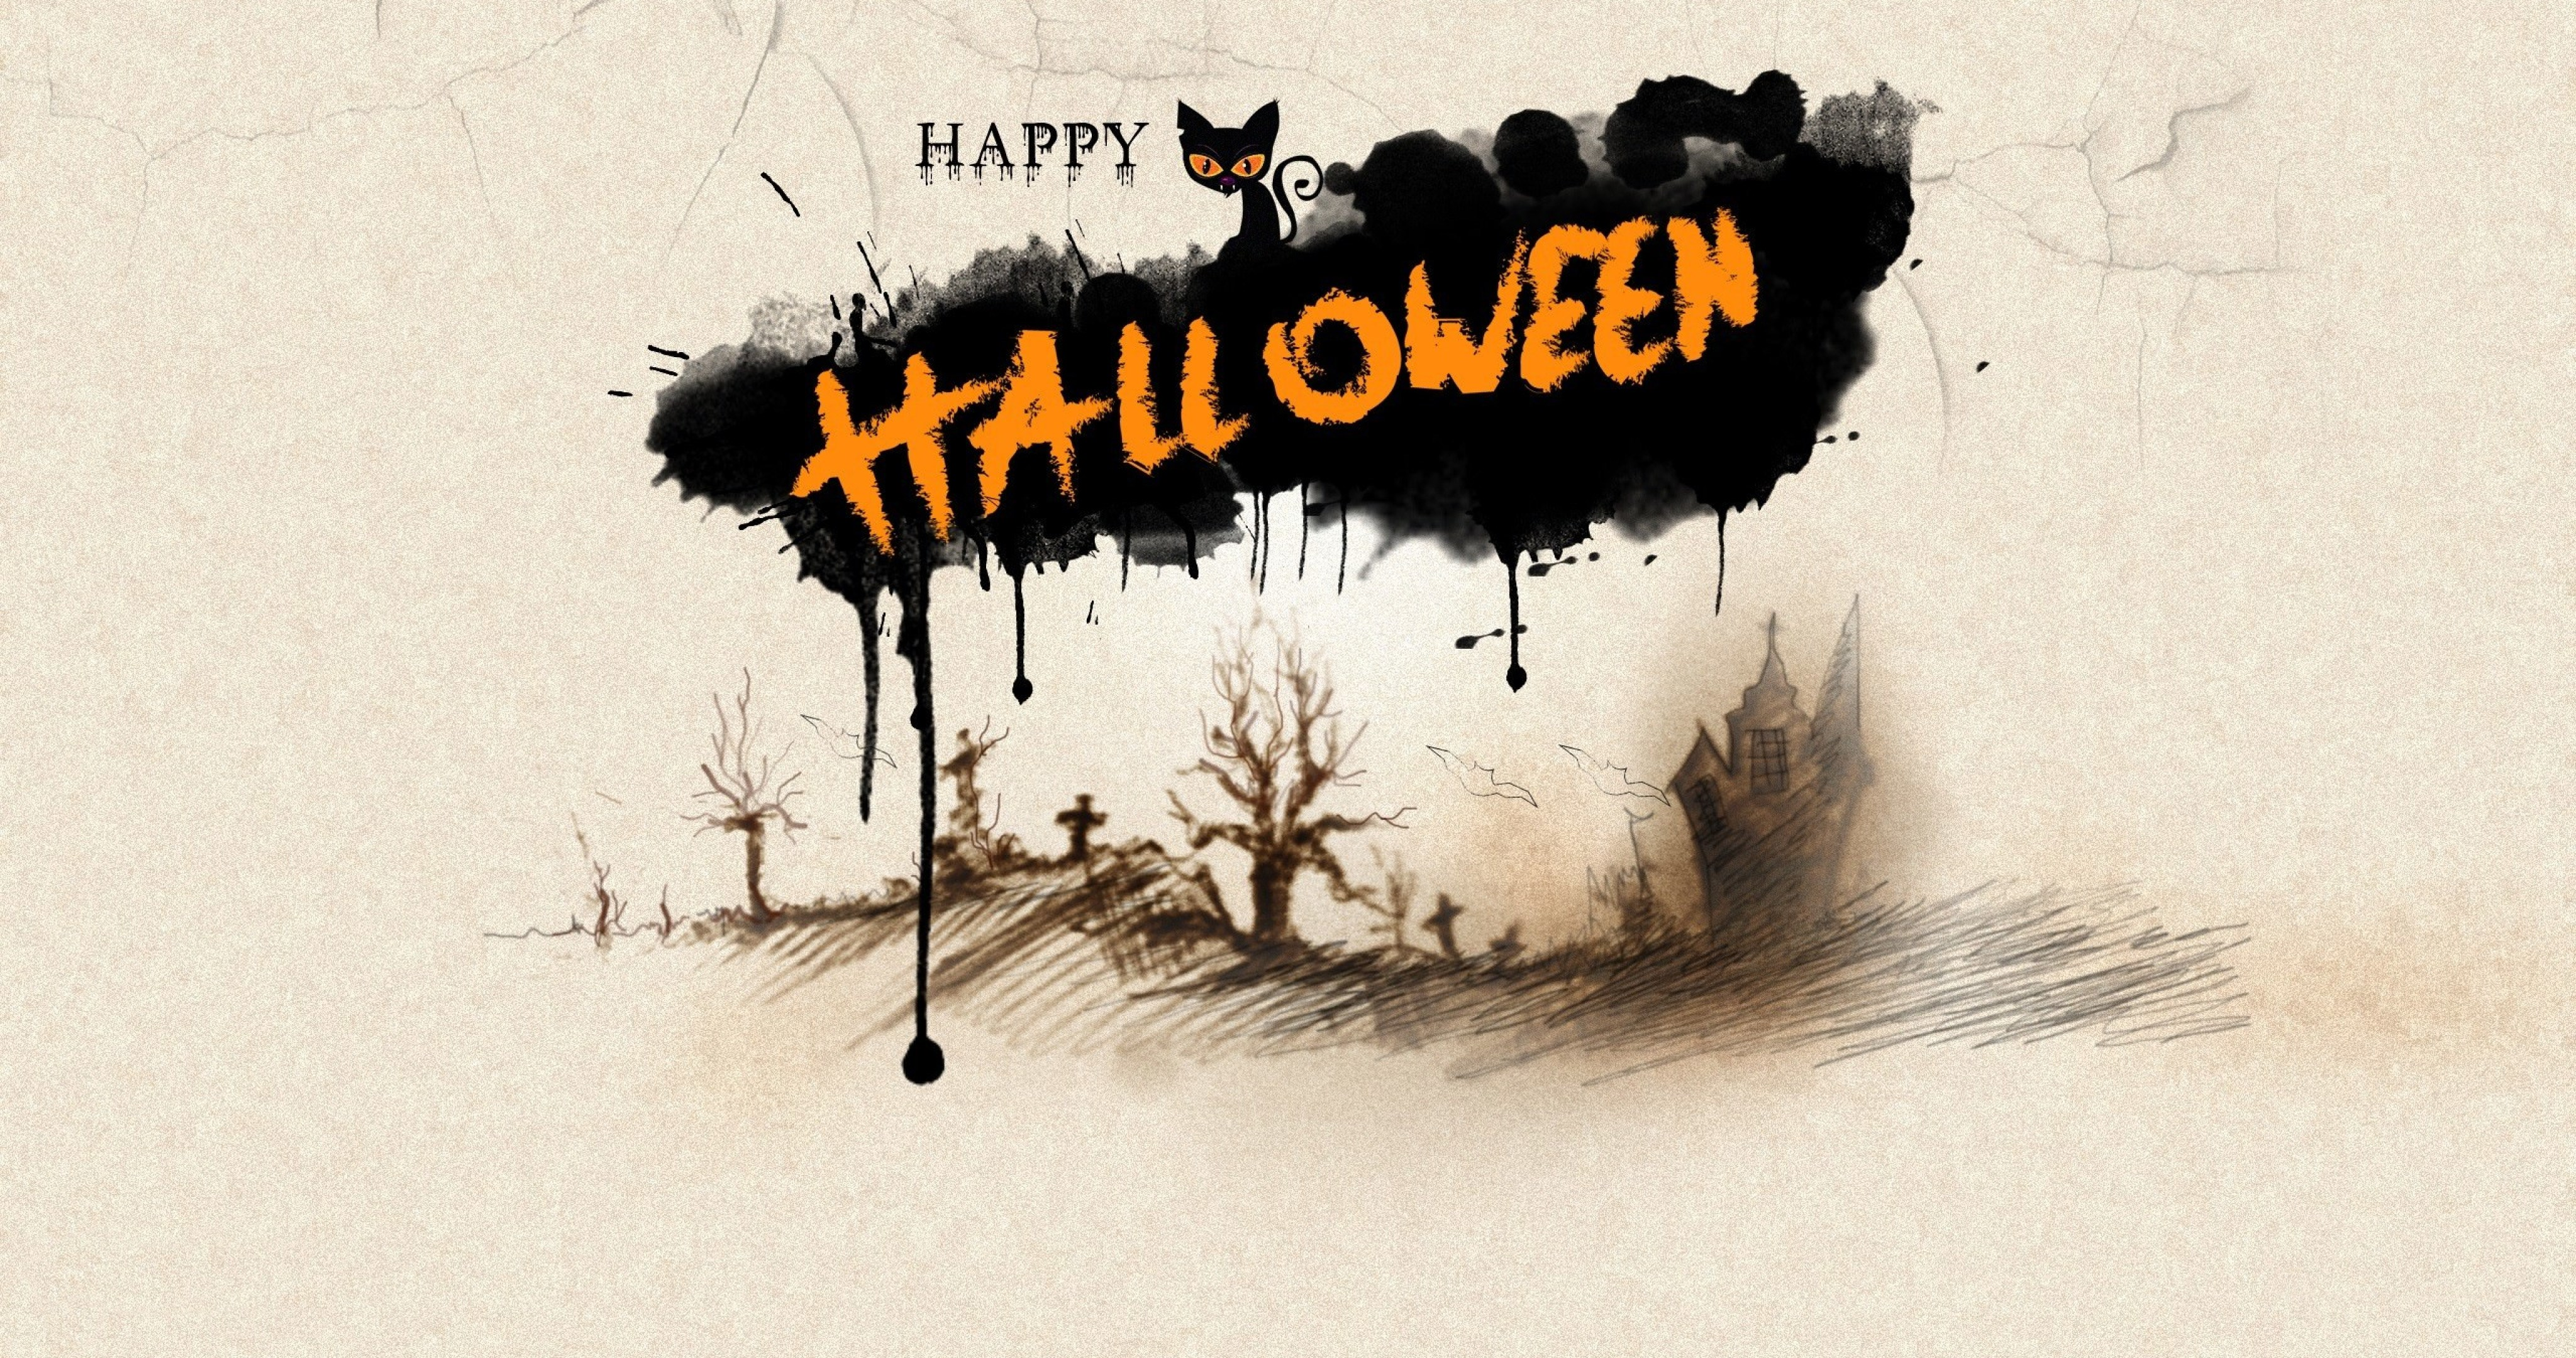 Amazing Wallpaper Halloween Ultra Hd - 75528-happy-halloween-day-wallpaper-4k-ultra-hd-wallpaper__holidays  Best Photo Reference_411336.jpg